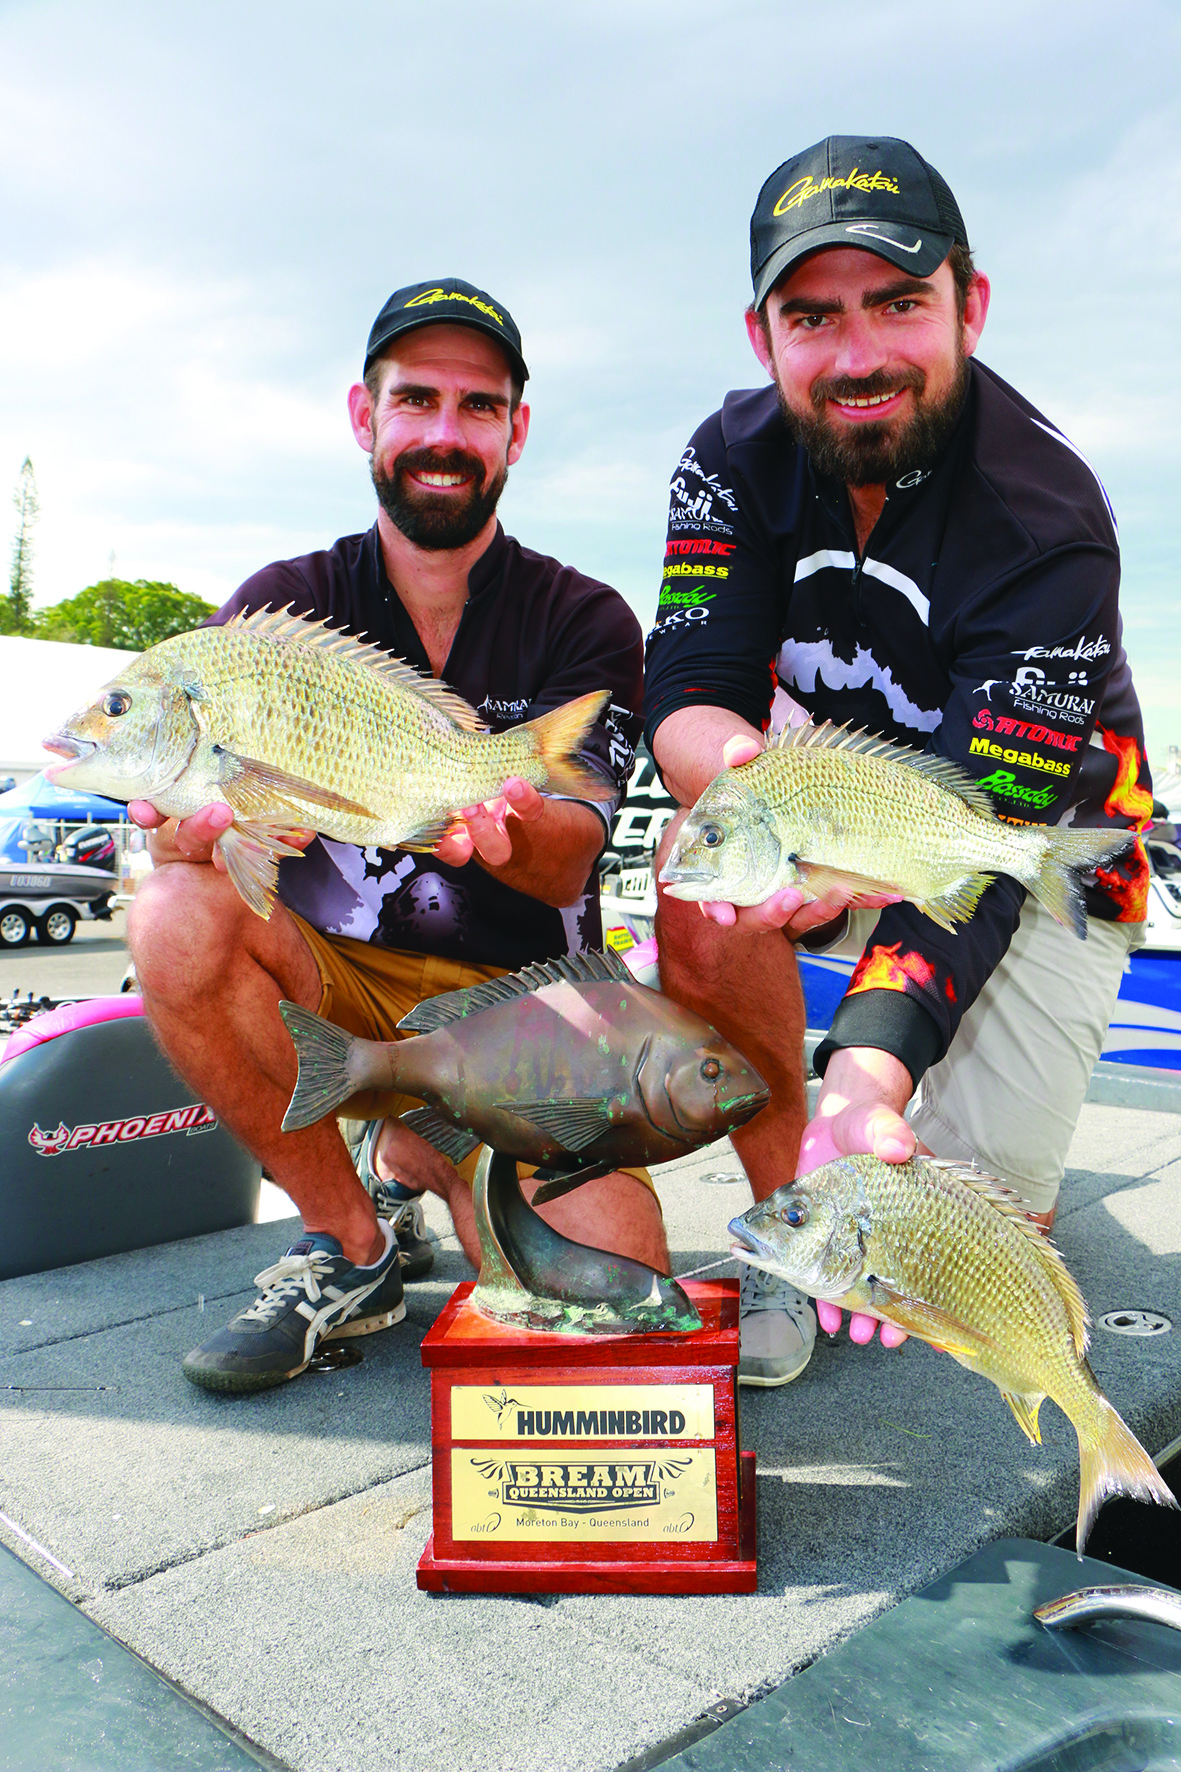 Brisbane dentists Tristan Taylor and David McKenzie showed off some of their 2015 prize-winning catches. The 2016 Spotters Sunglasses Queensland Open BREAM tournament weigh-ins will be a highlight of the Cleveland Caravan, Camping, Boating & 4x4 Expo at the Cleveland Showgrounds from September 23-25.